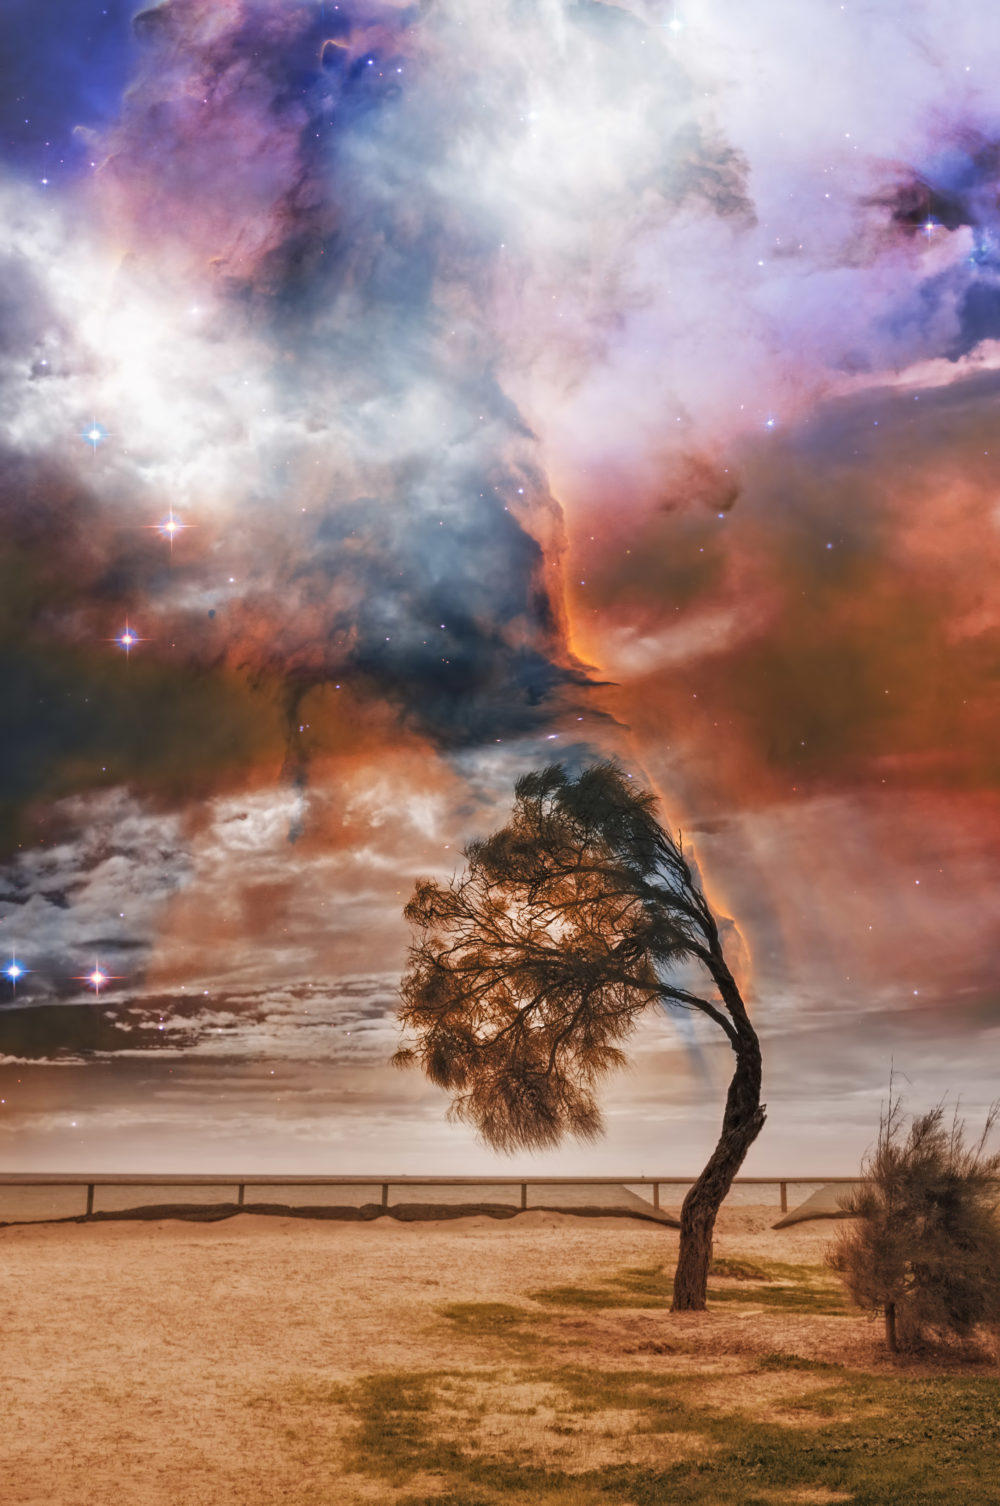 Alien landscape with lone tree bent in strong wind and bright galaxy in the sky.